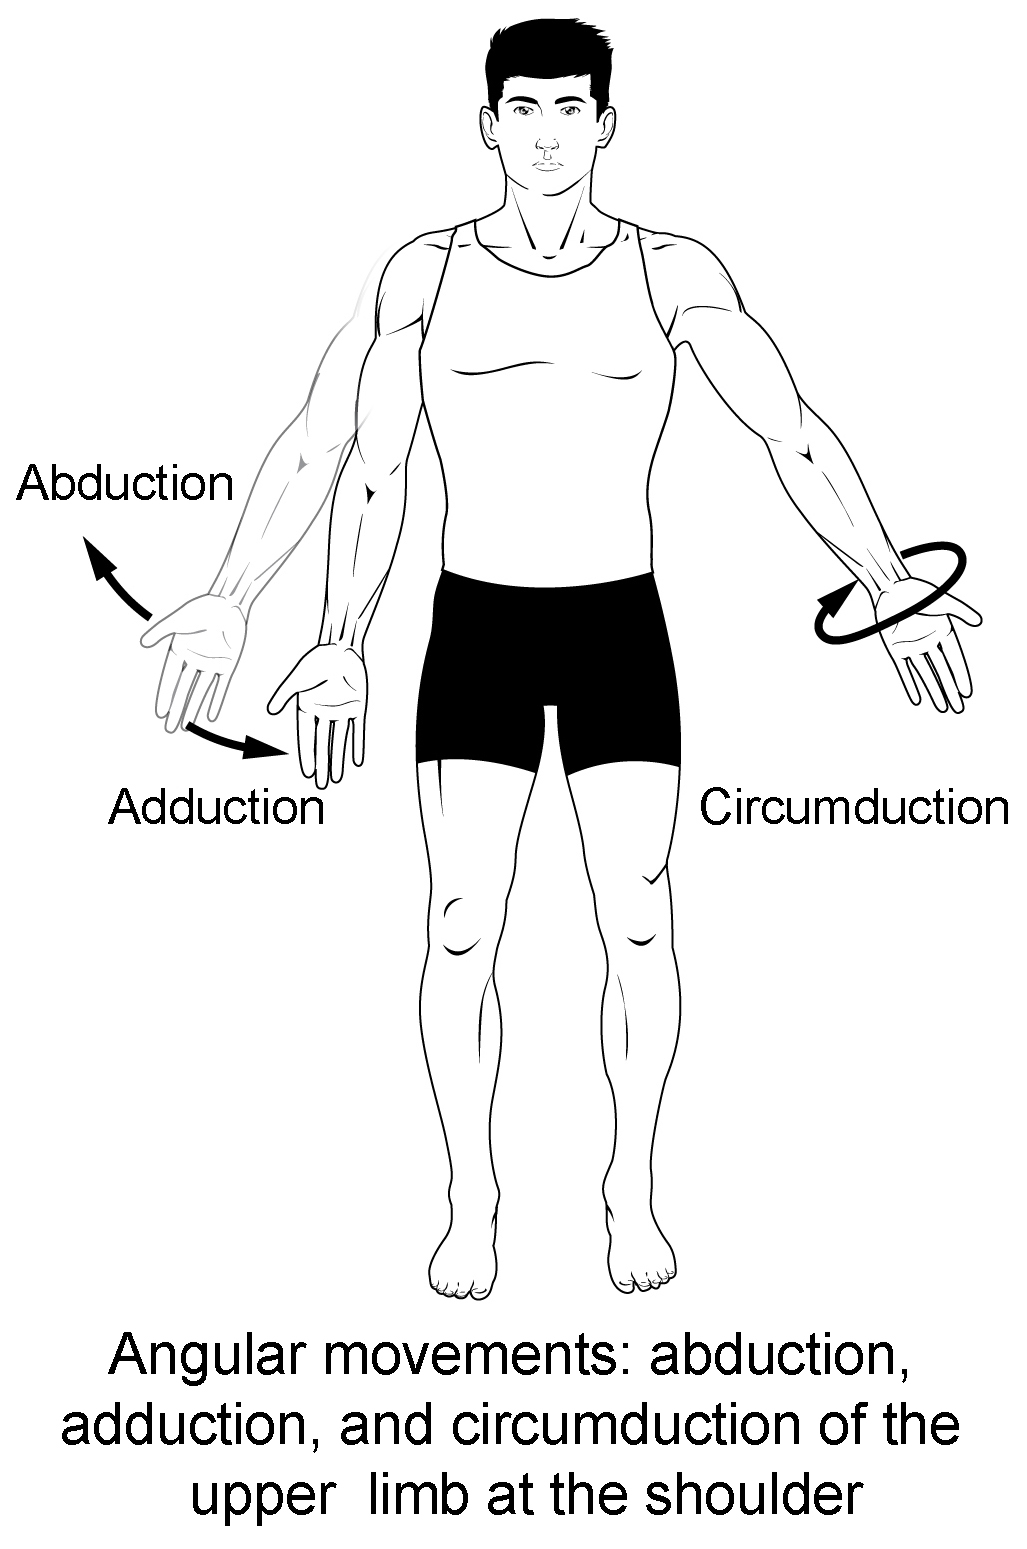 movements allowed by synovial joints diagram 3 way switch wiring more than one light types of body anatomy and physiology i